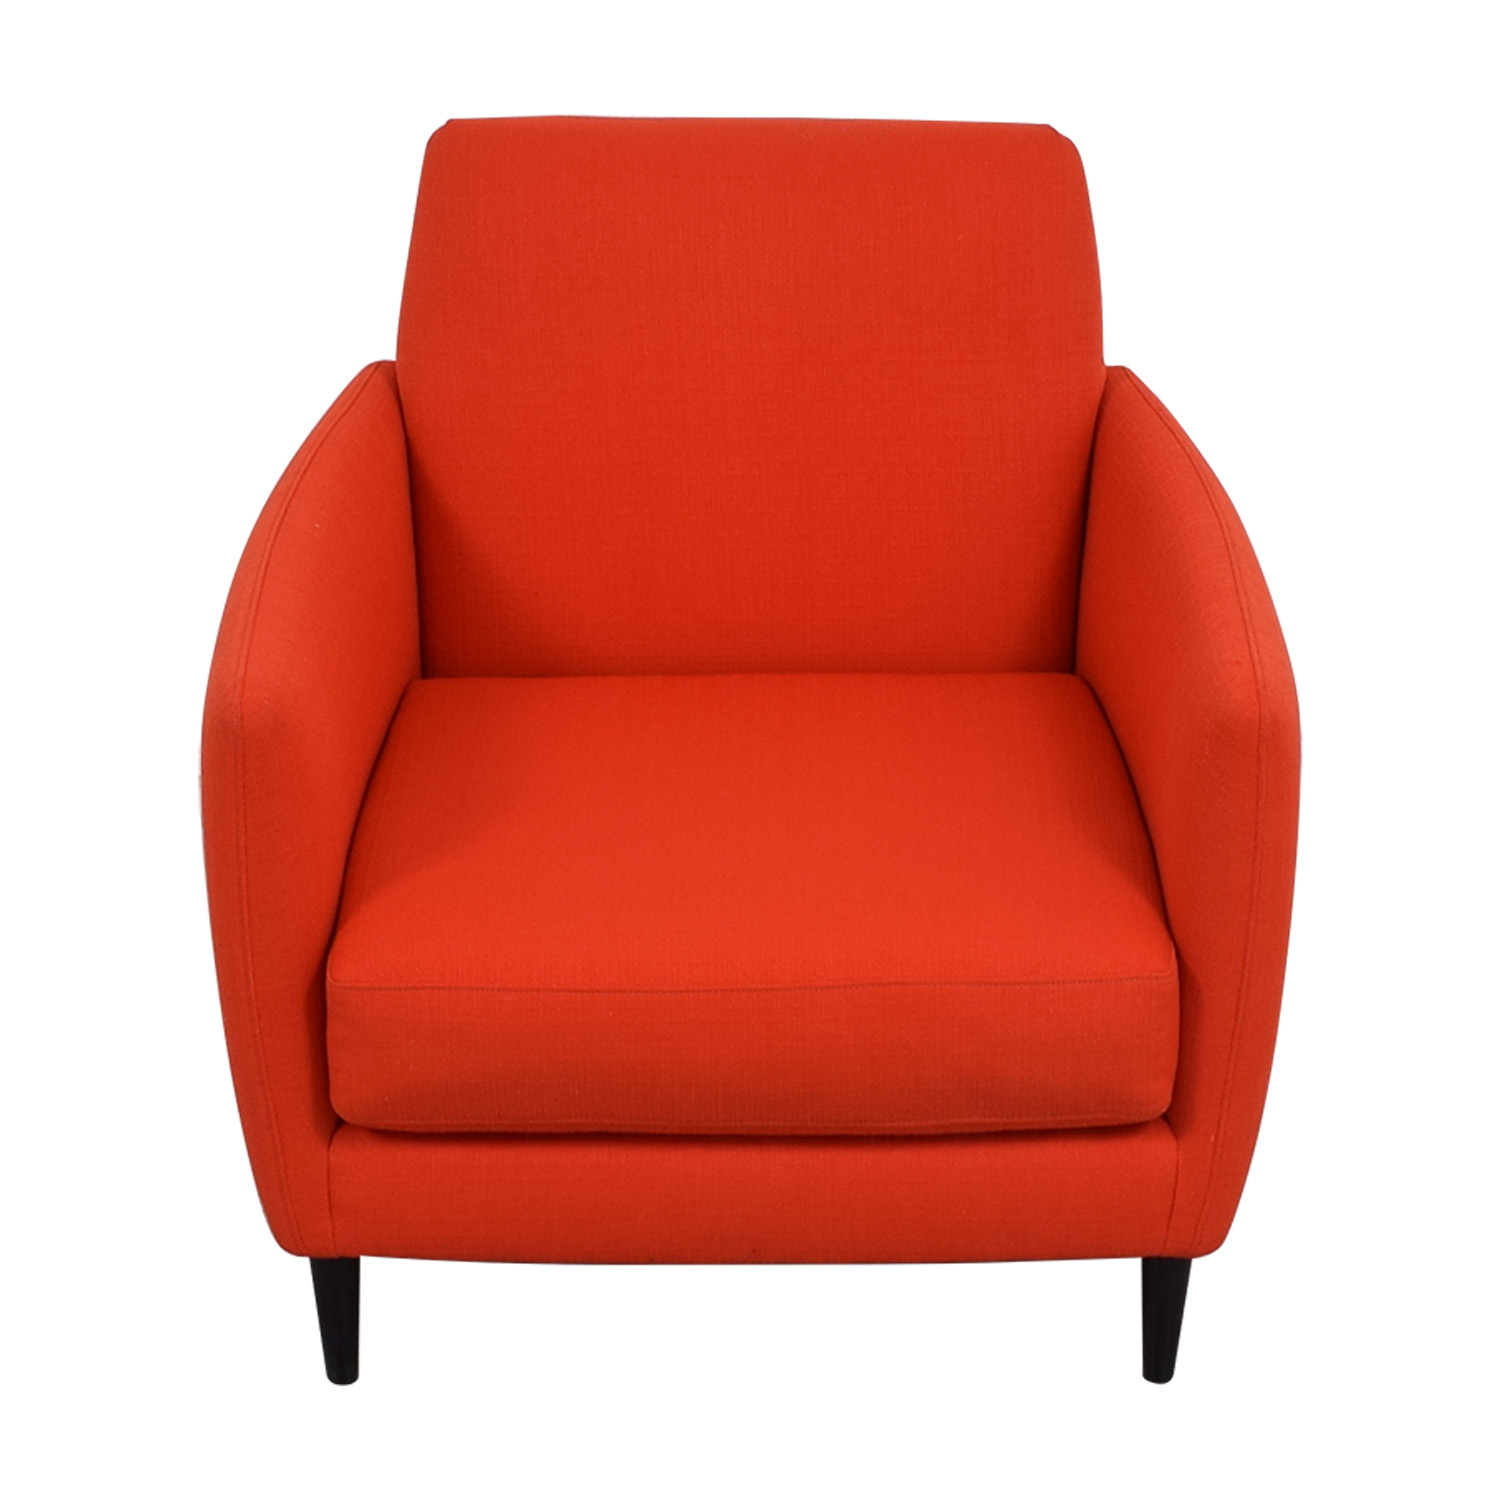 CB2 CB2 Orange Red Parlour Chair dimensions